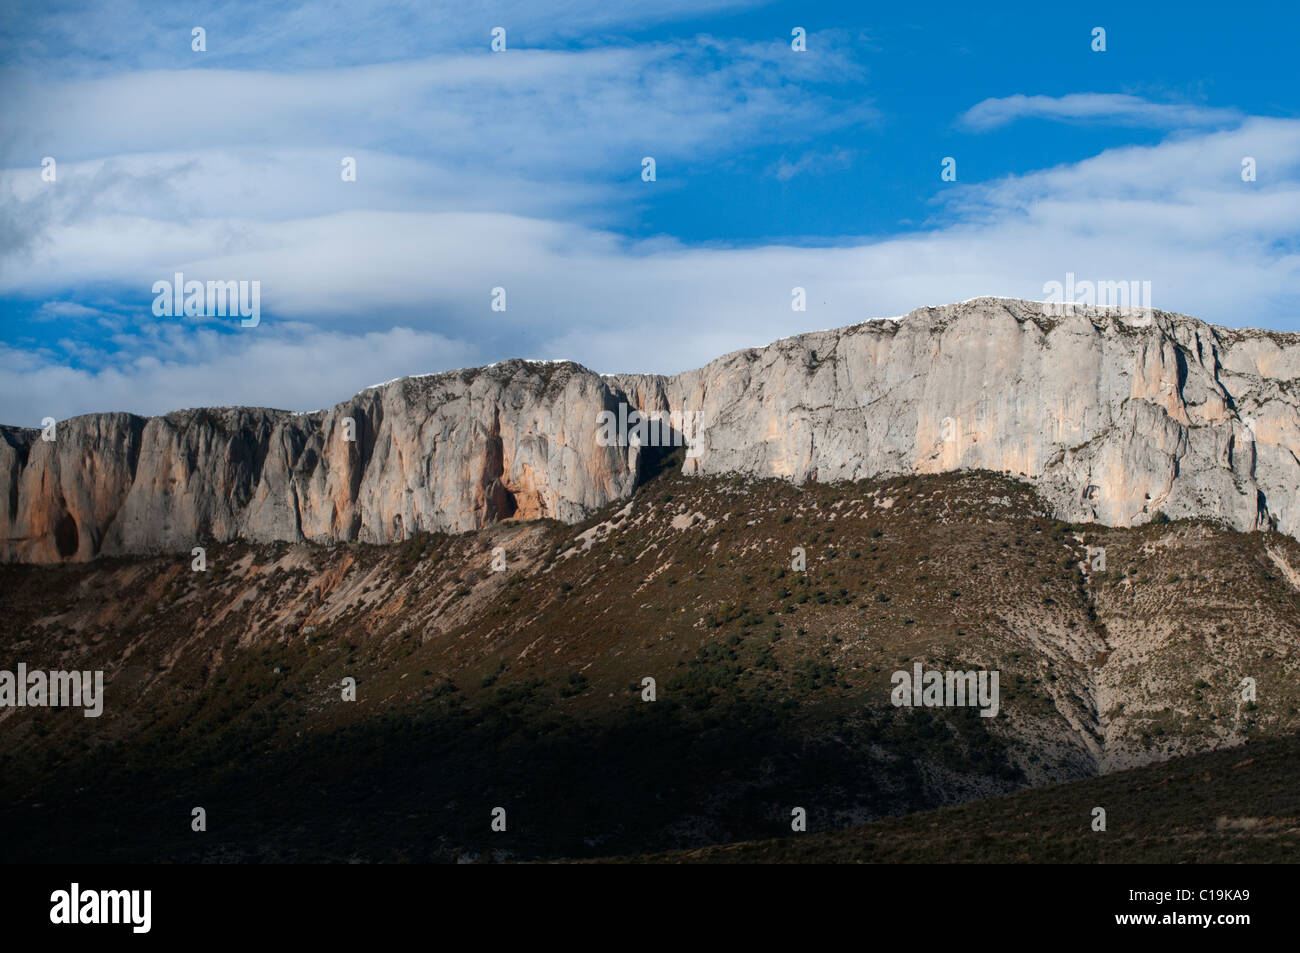 Cliff near Trem in Catalonian Pyrenees Spain - Stock Image